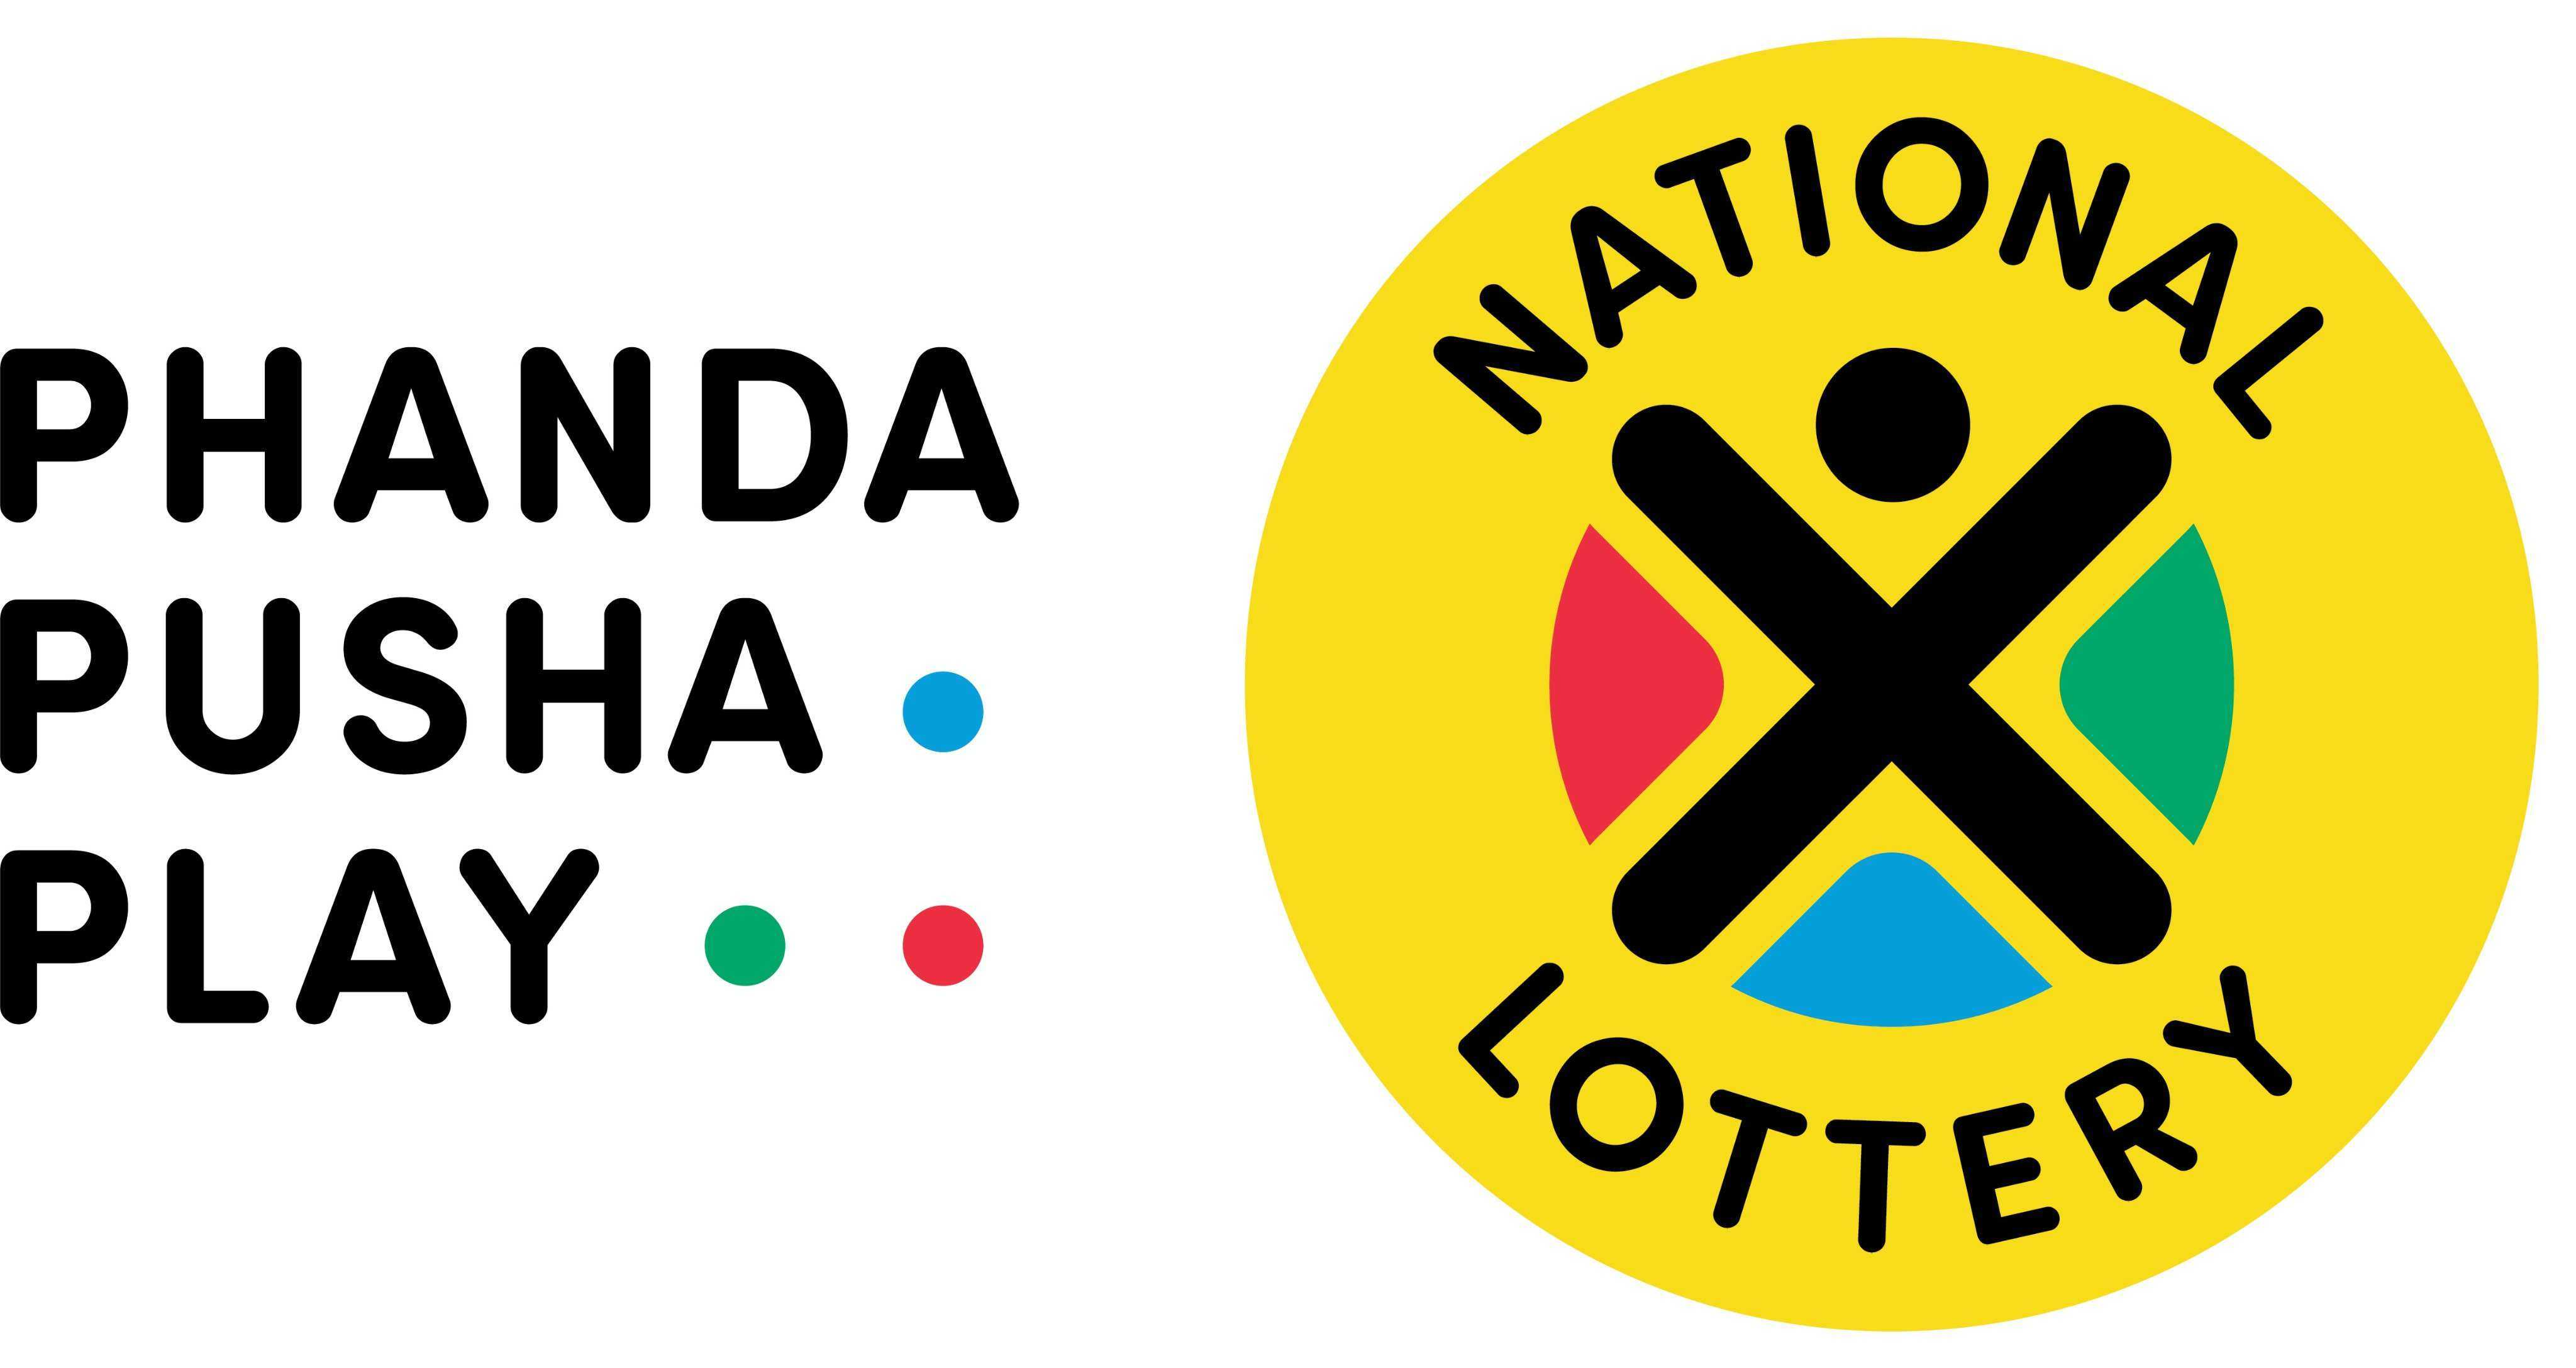 South africa - lotto обзор